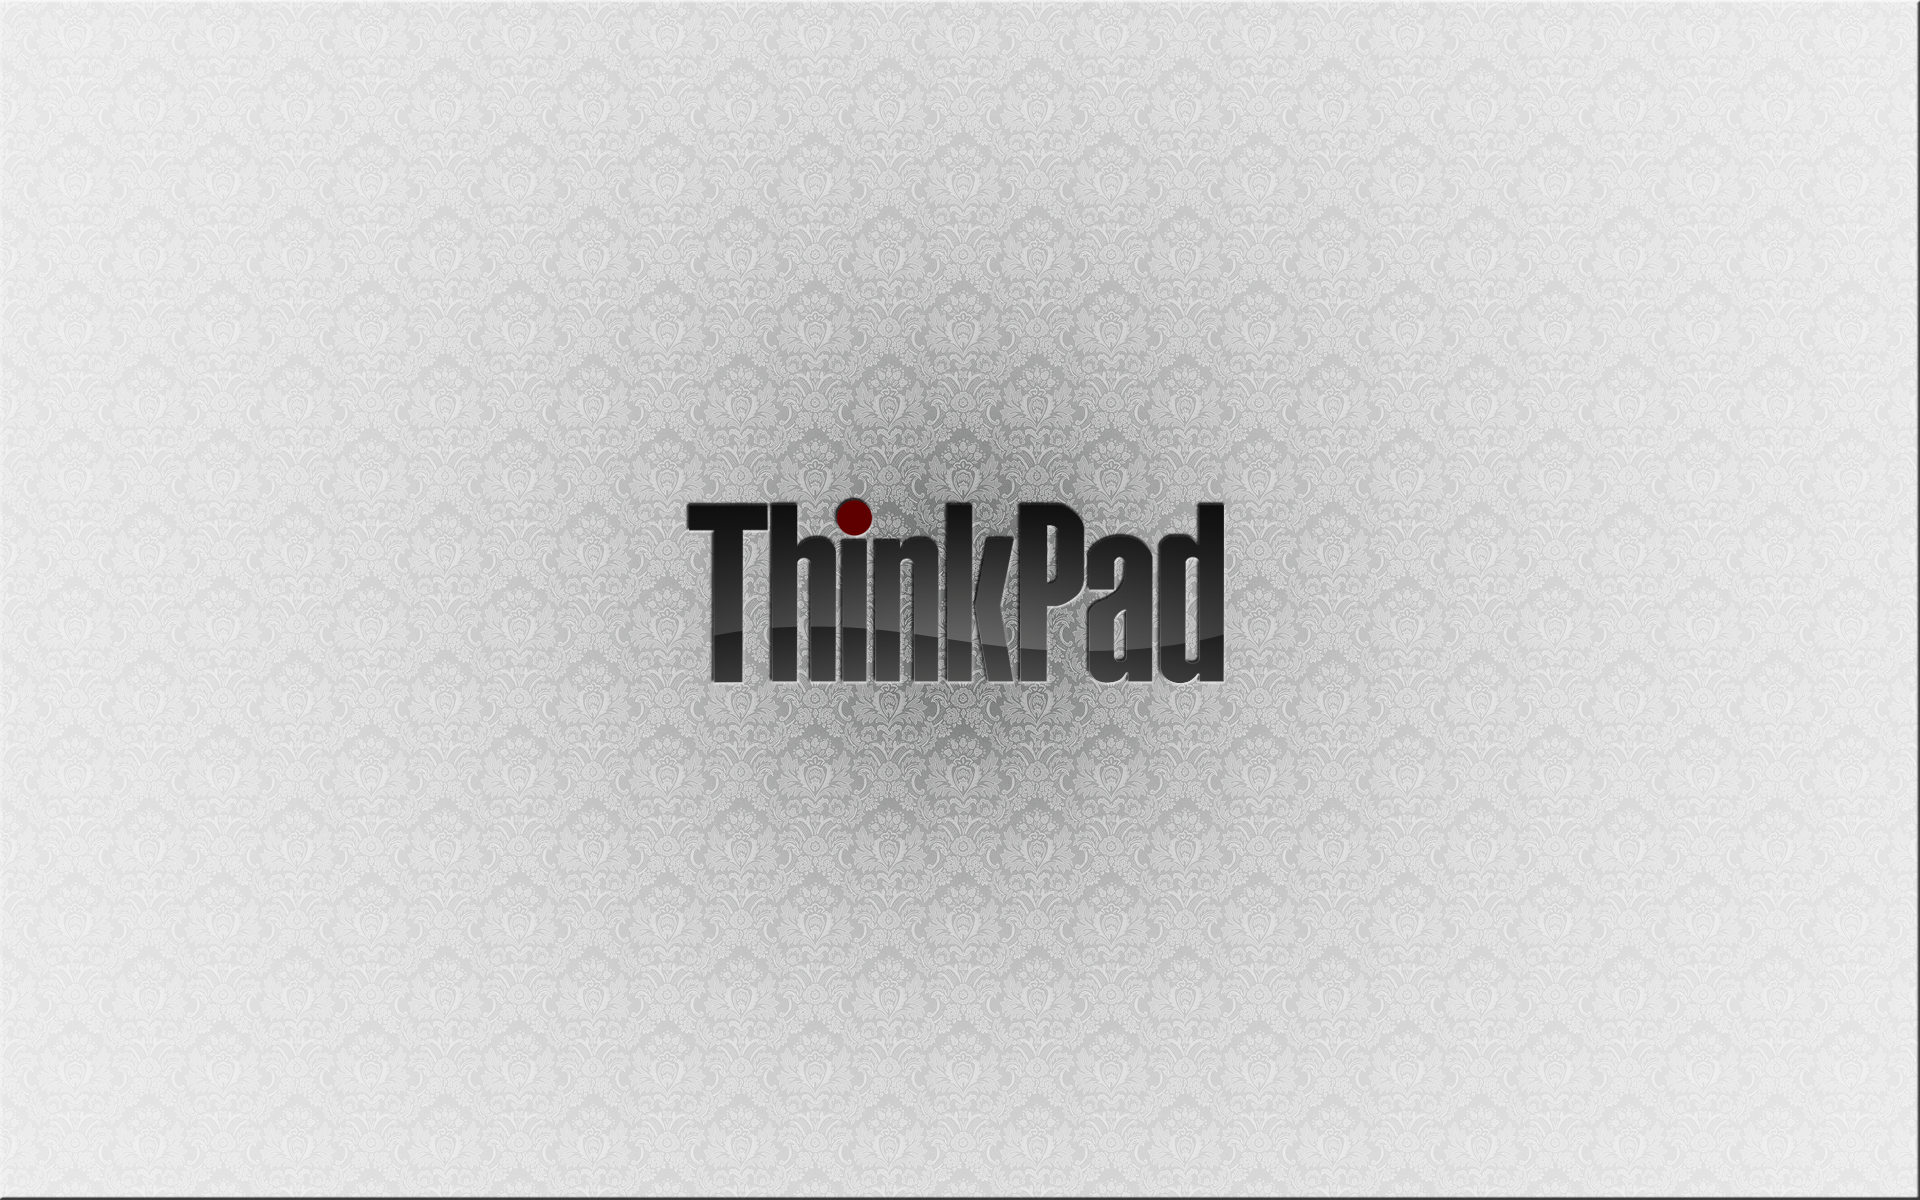 Thinkpad wallpapers